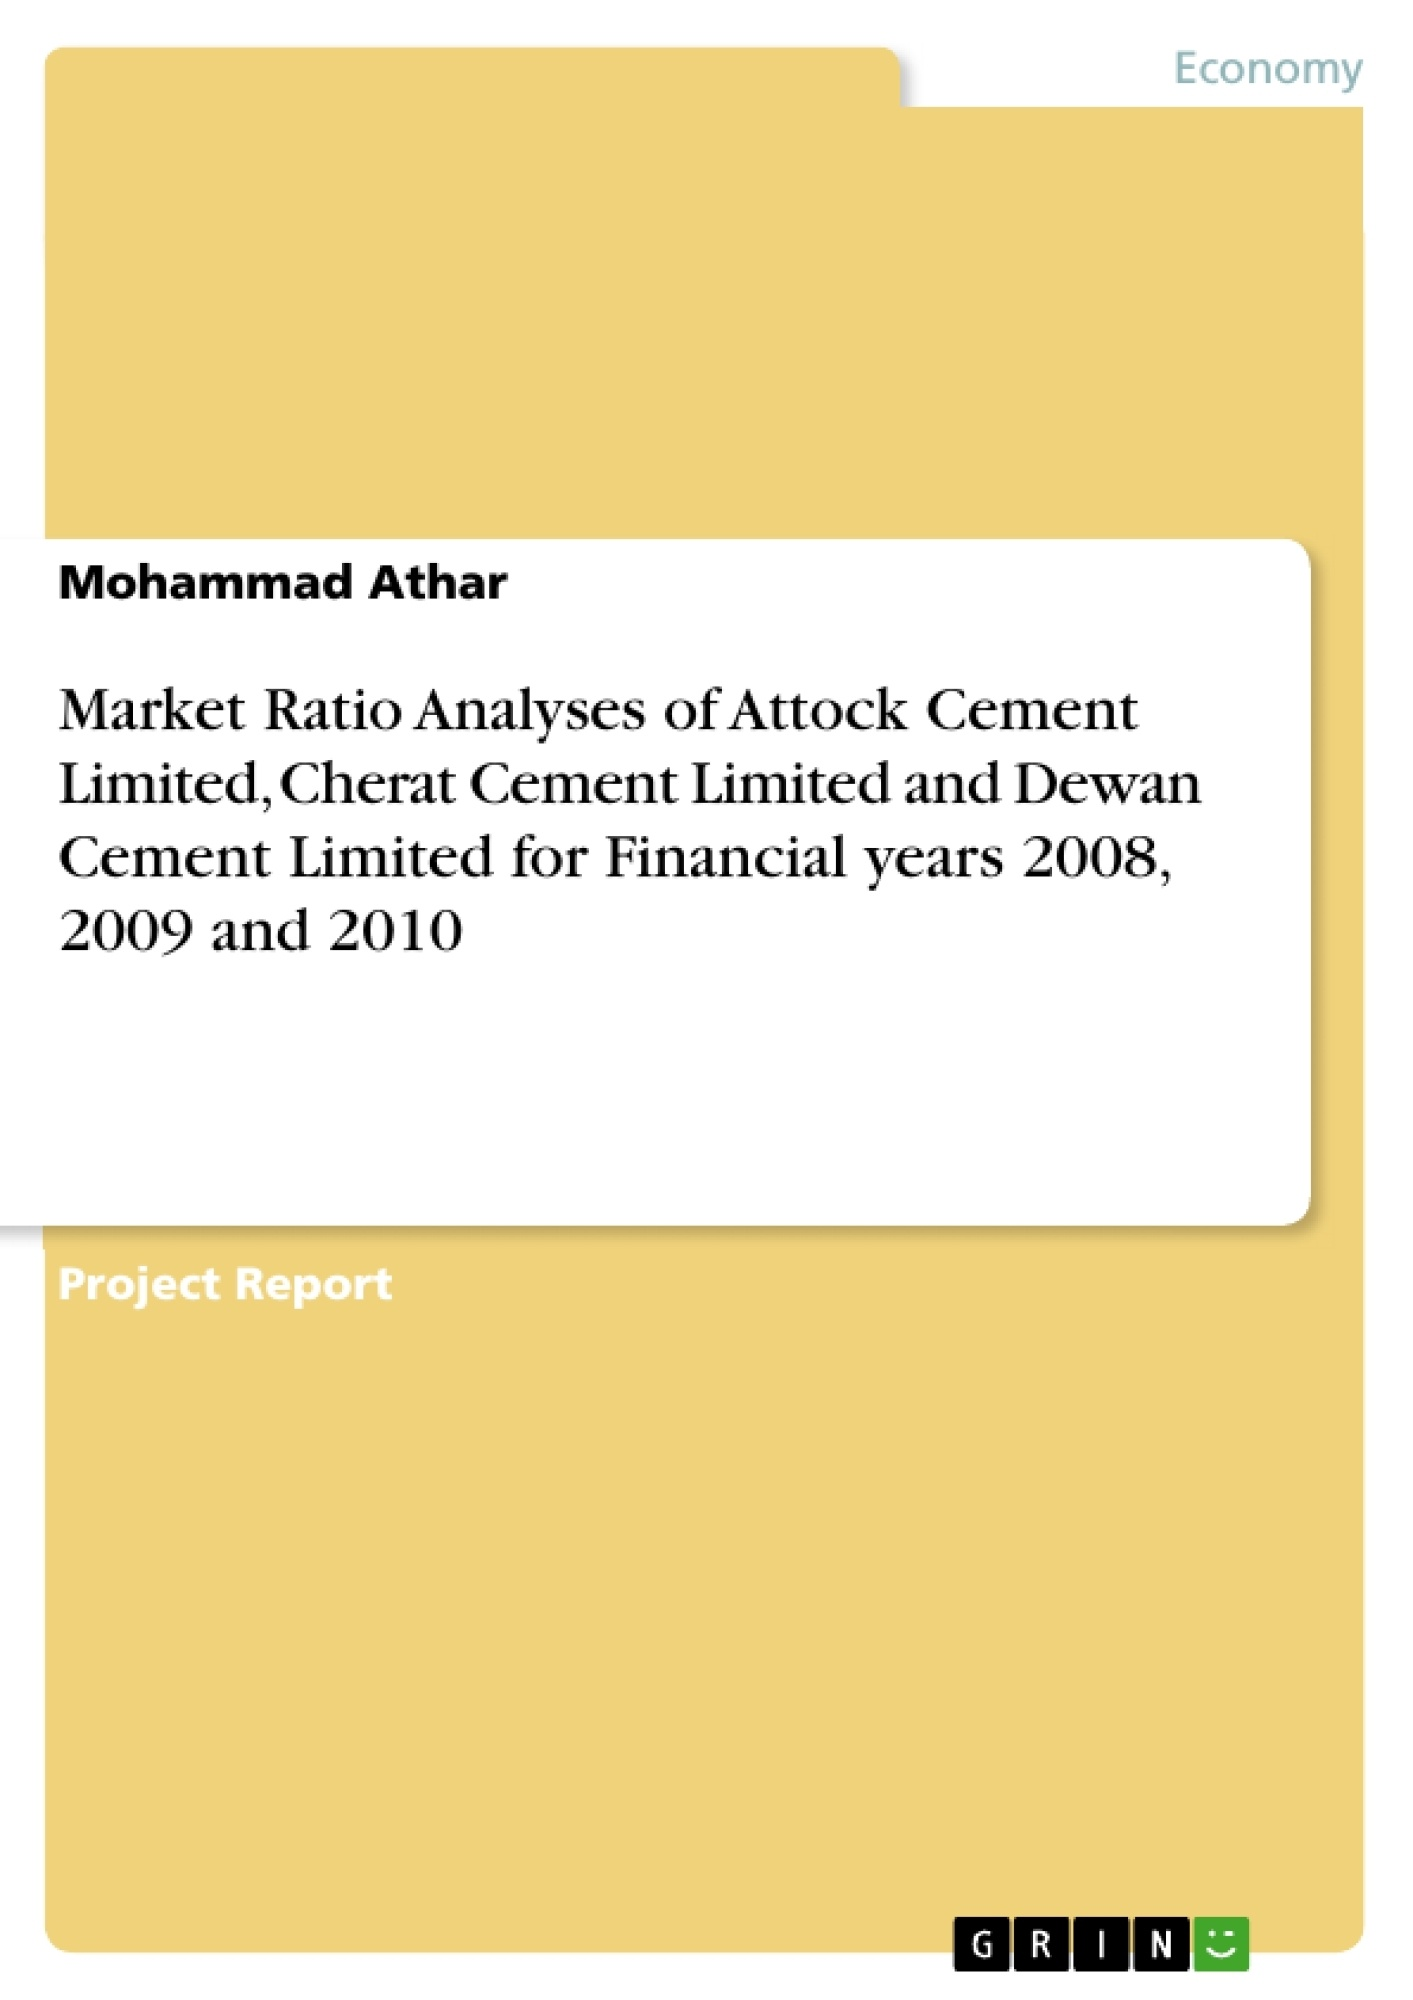 Title: Market Ratio Analyses of Attock Cement Limited, Cherat Cement Limited and Dewan Cement Limited for Financial years 2008, 2009 and 2010